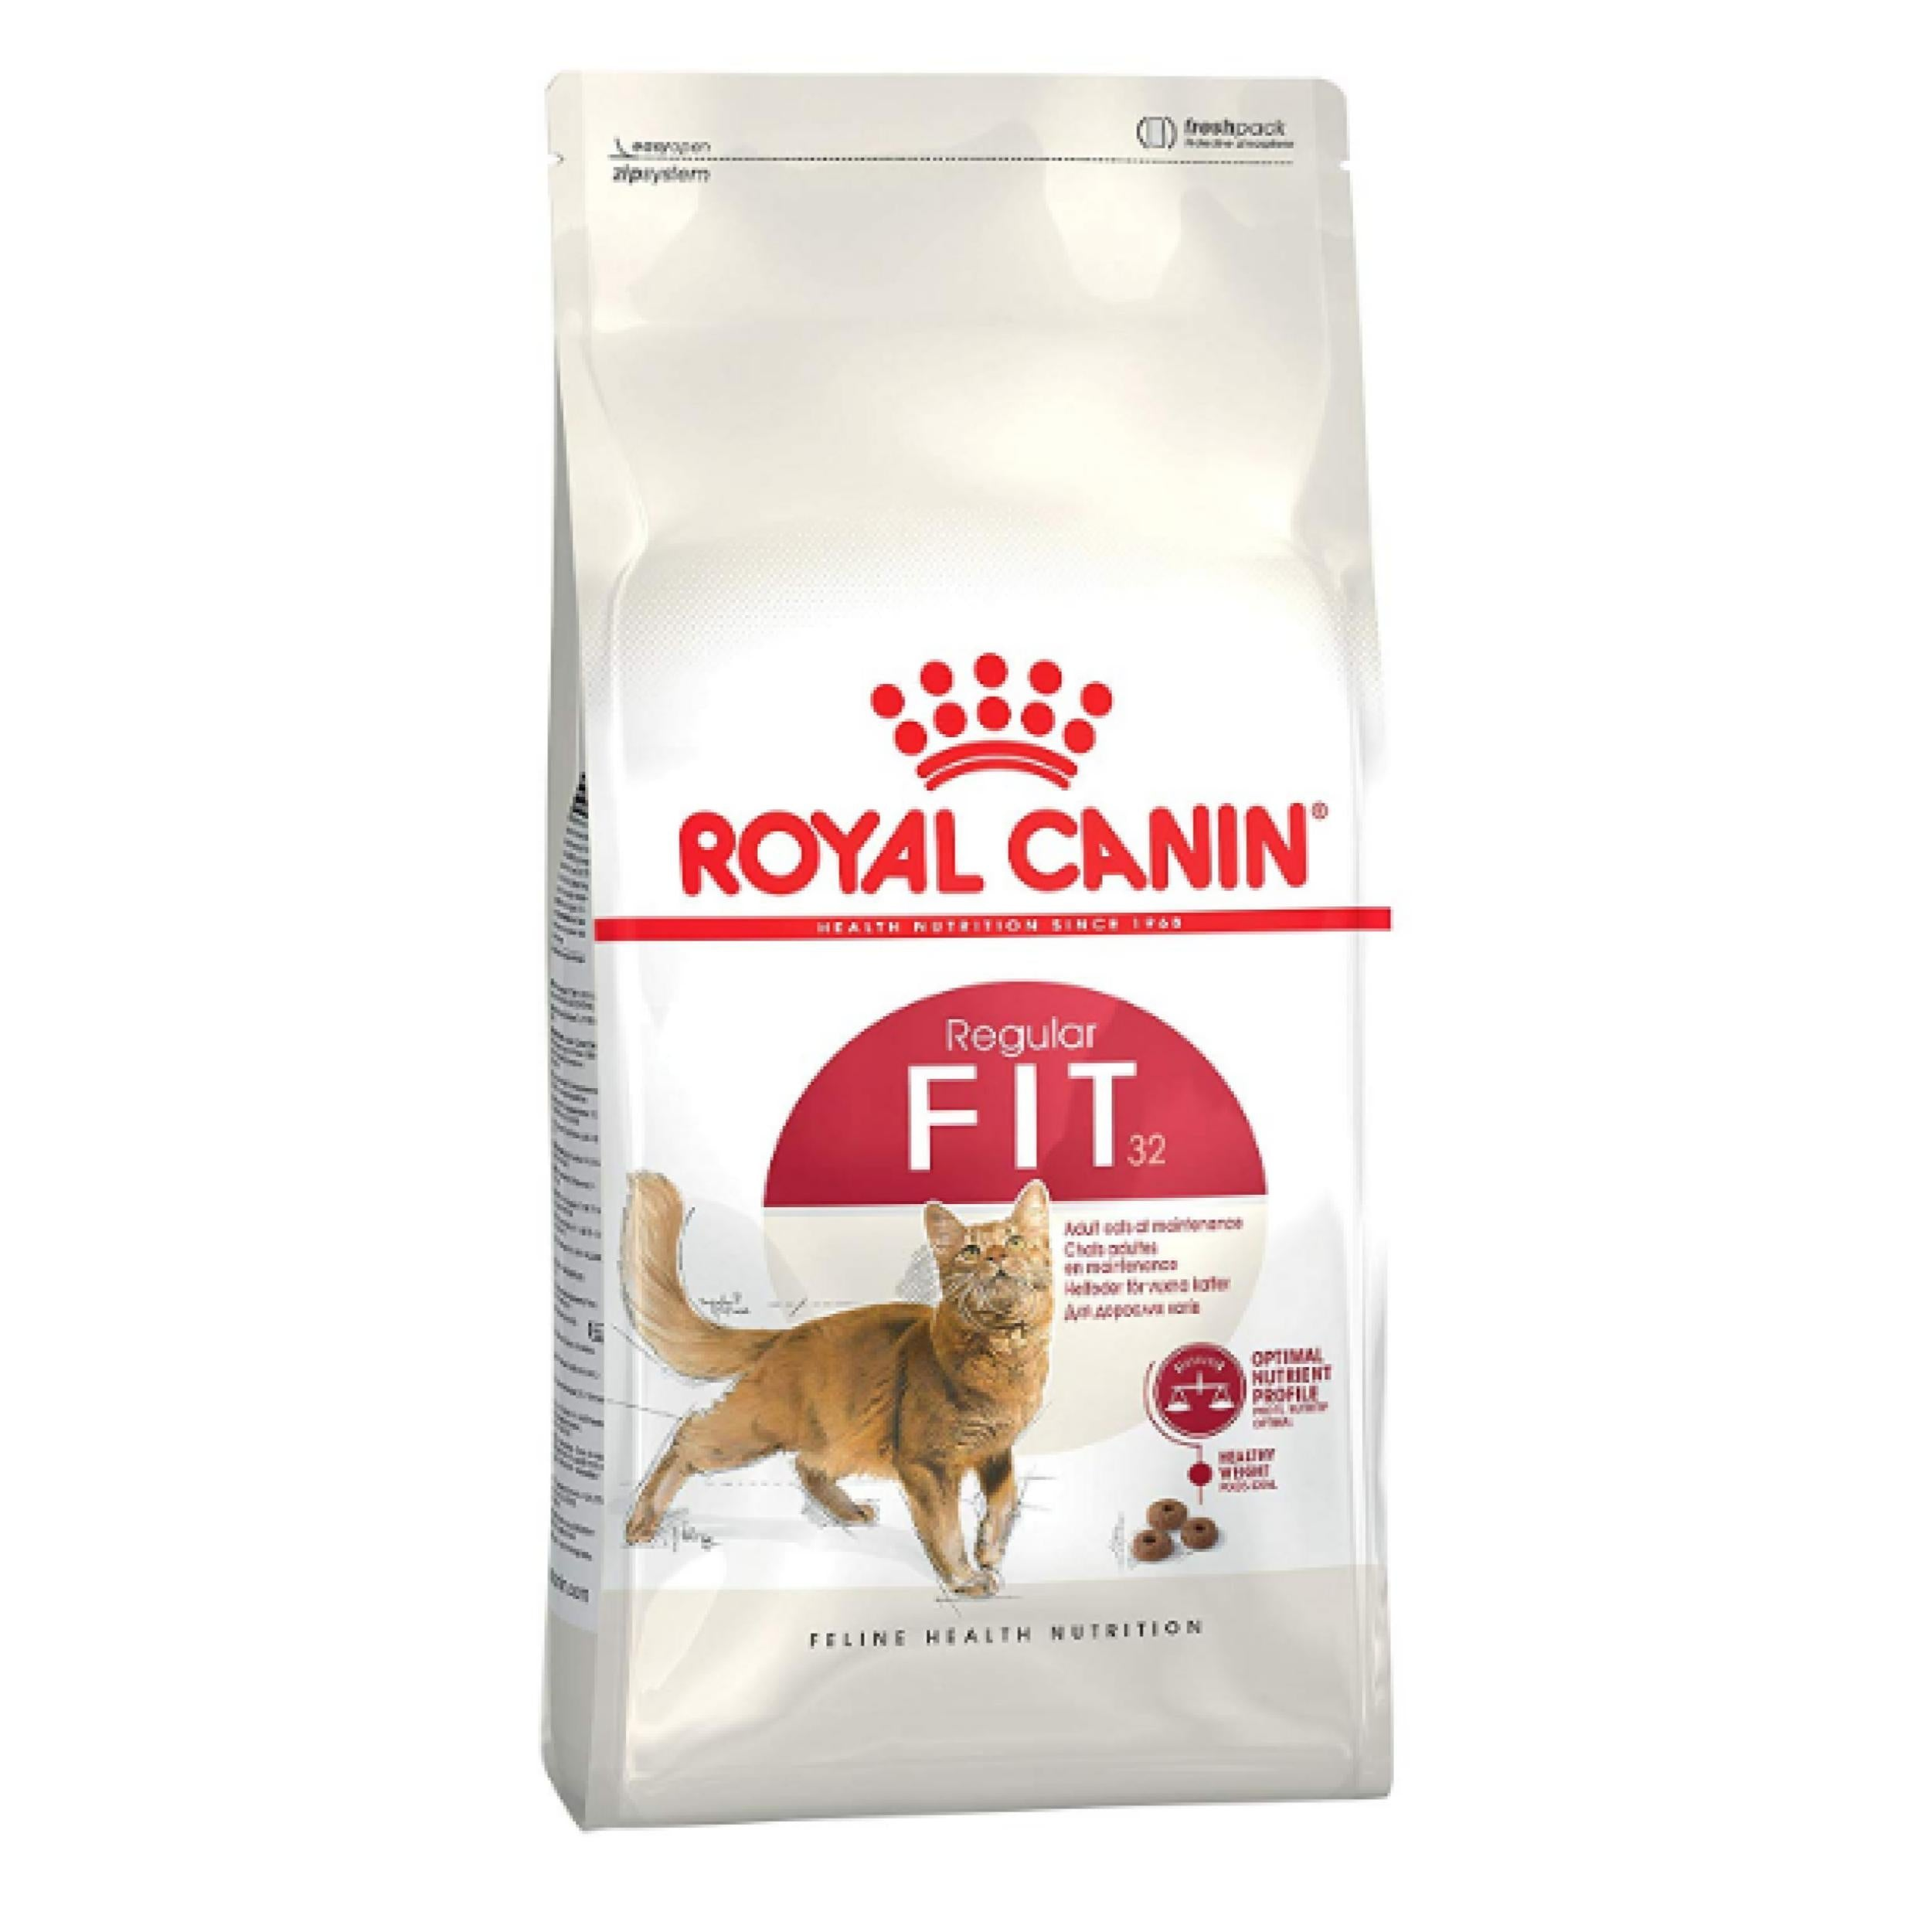 Royal Canin Feline Fit 32 Cat Dry Food - Poochles